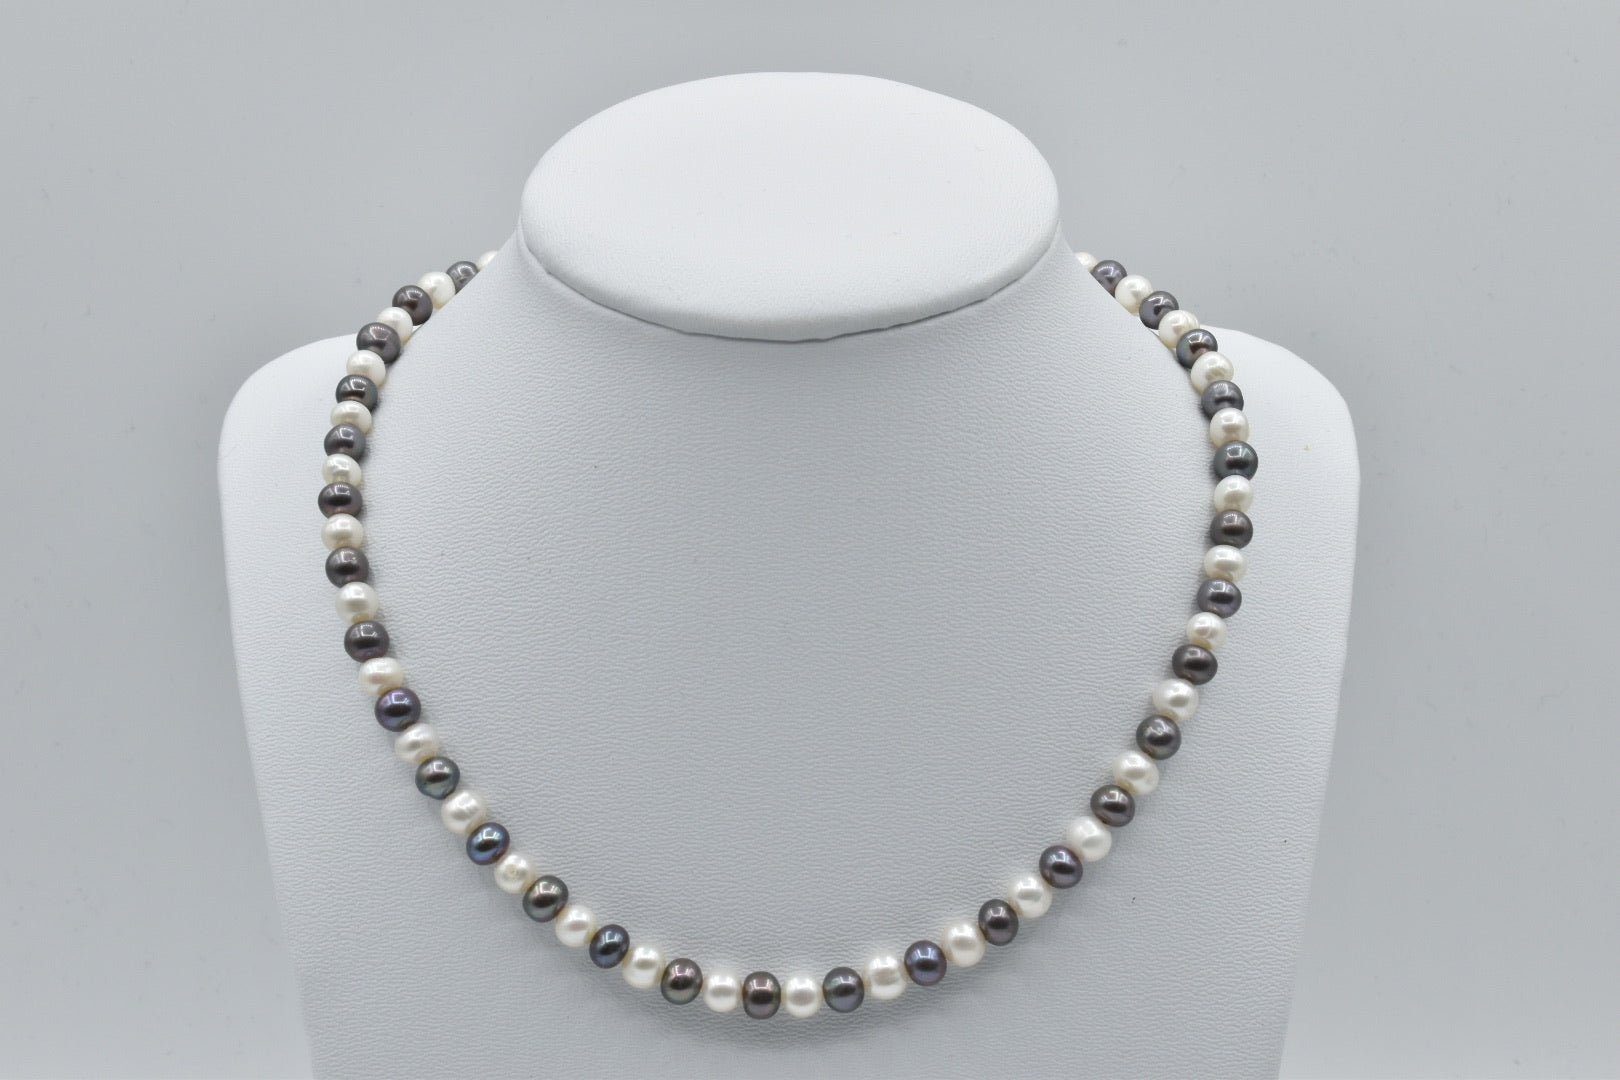 White And Black Freshwater Multicolor Oval Pearl Necklace, 16.5 inches, 6-7mm